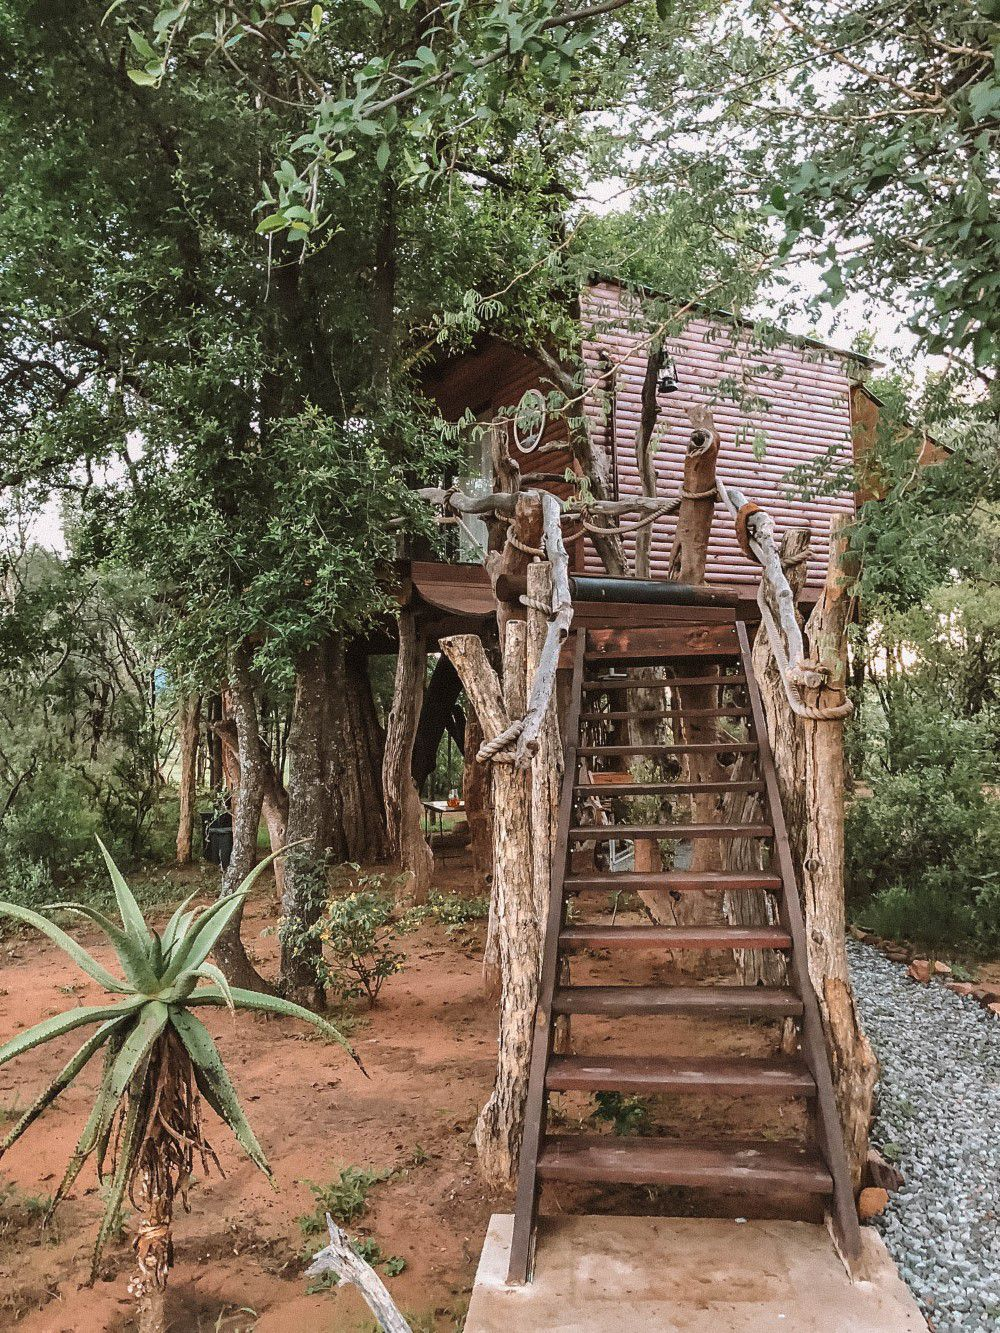 Luara Wildlife treehouse